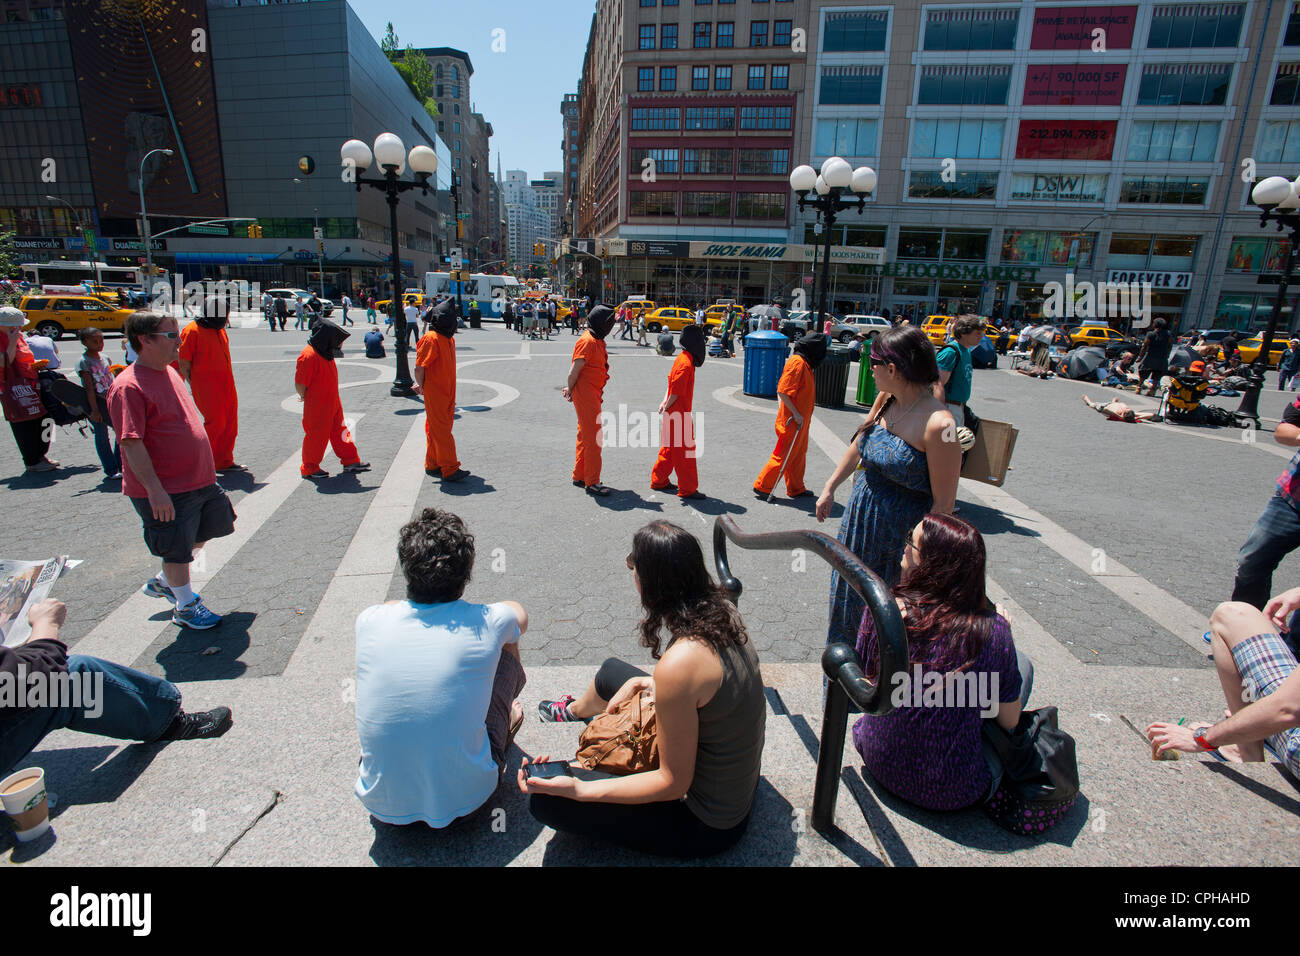 Volunteers from Witness Torture dress up as Guantanamo Bay detainees in Union Square Park in New York - Stock Image